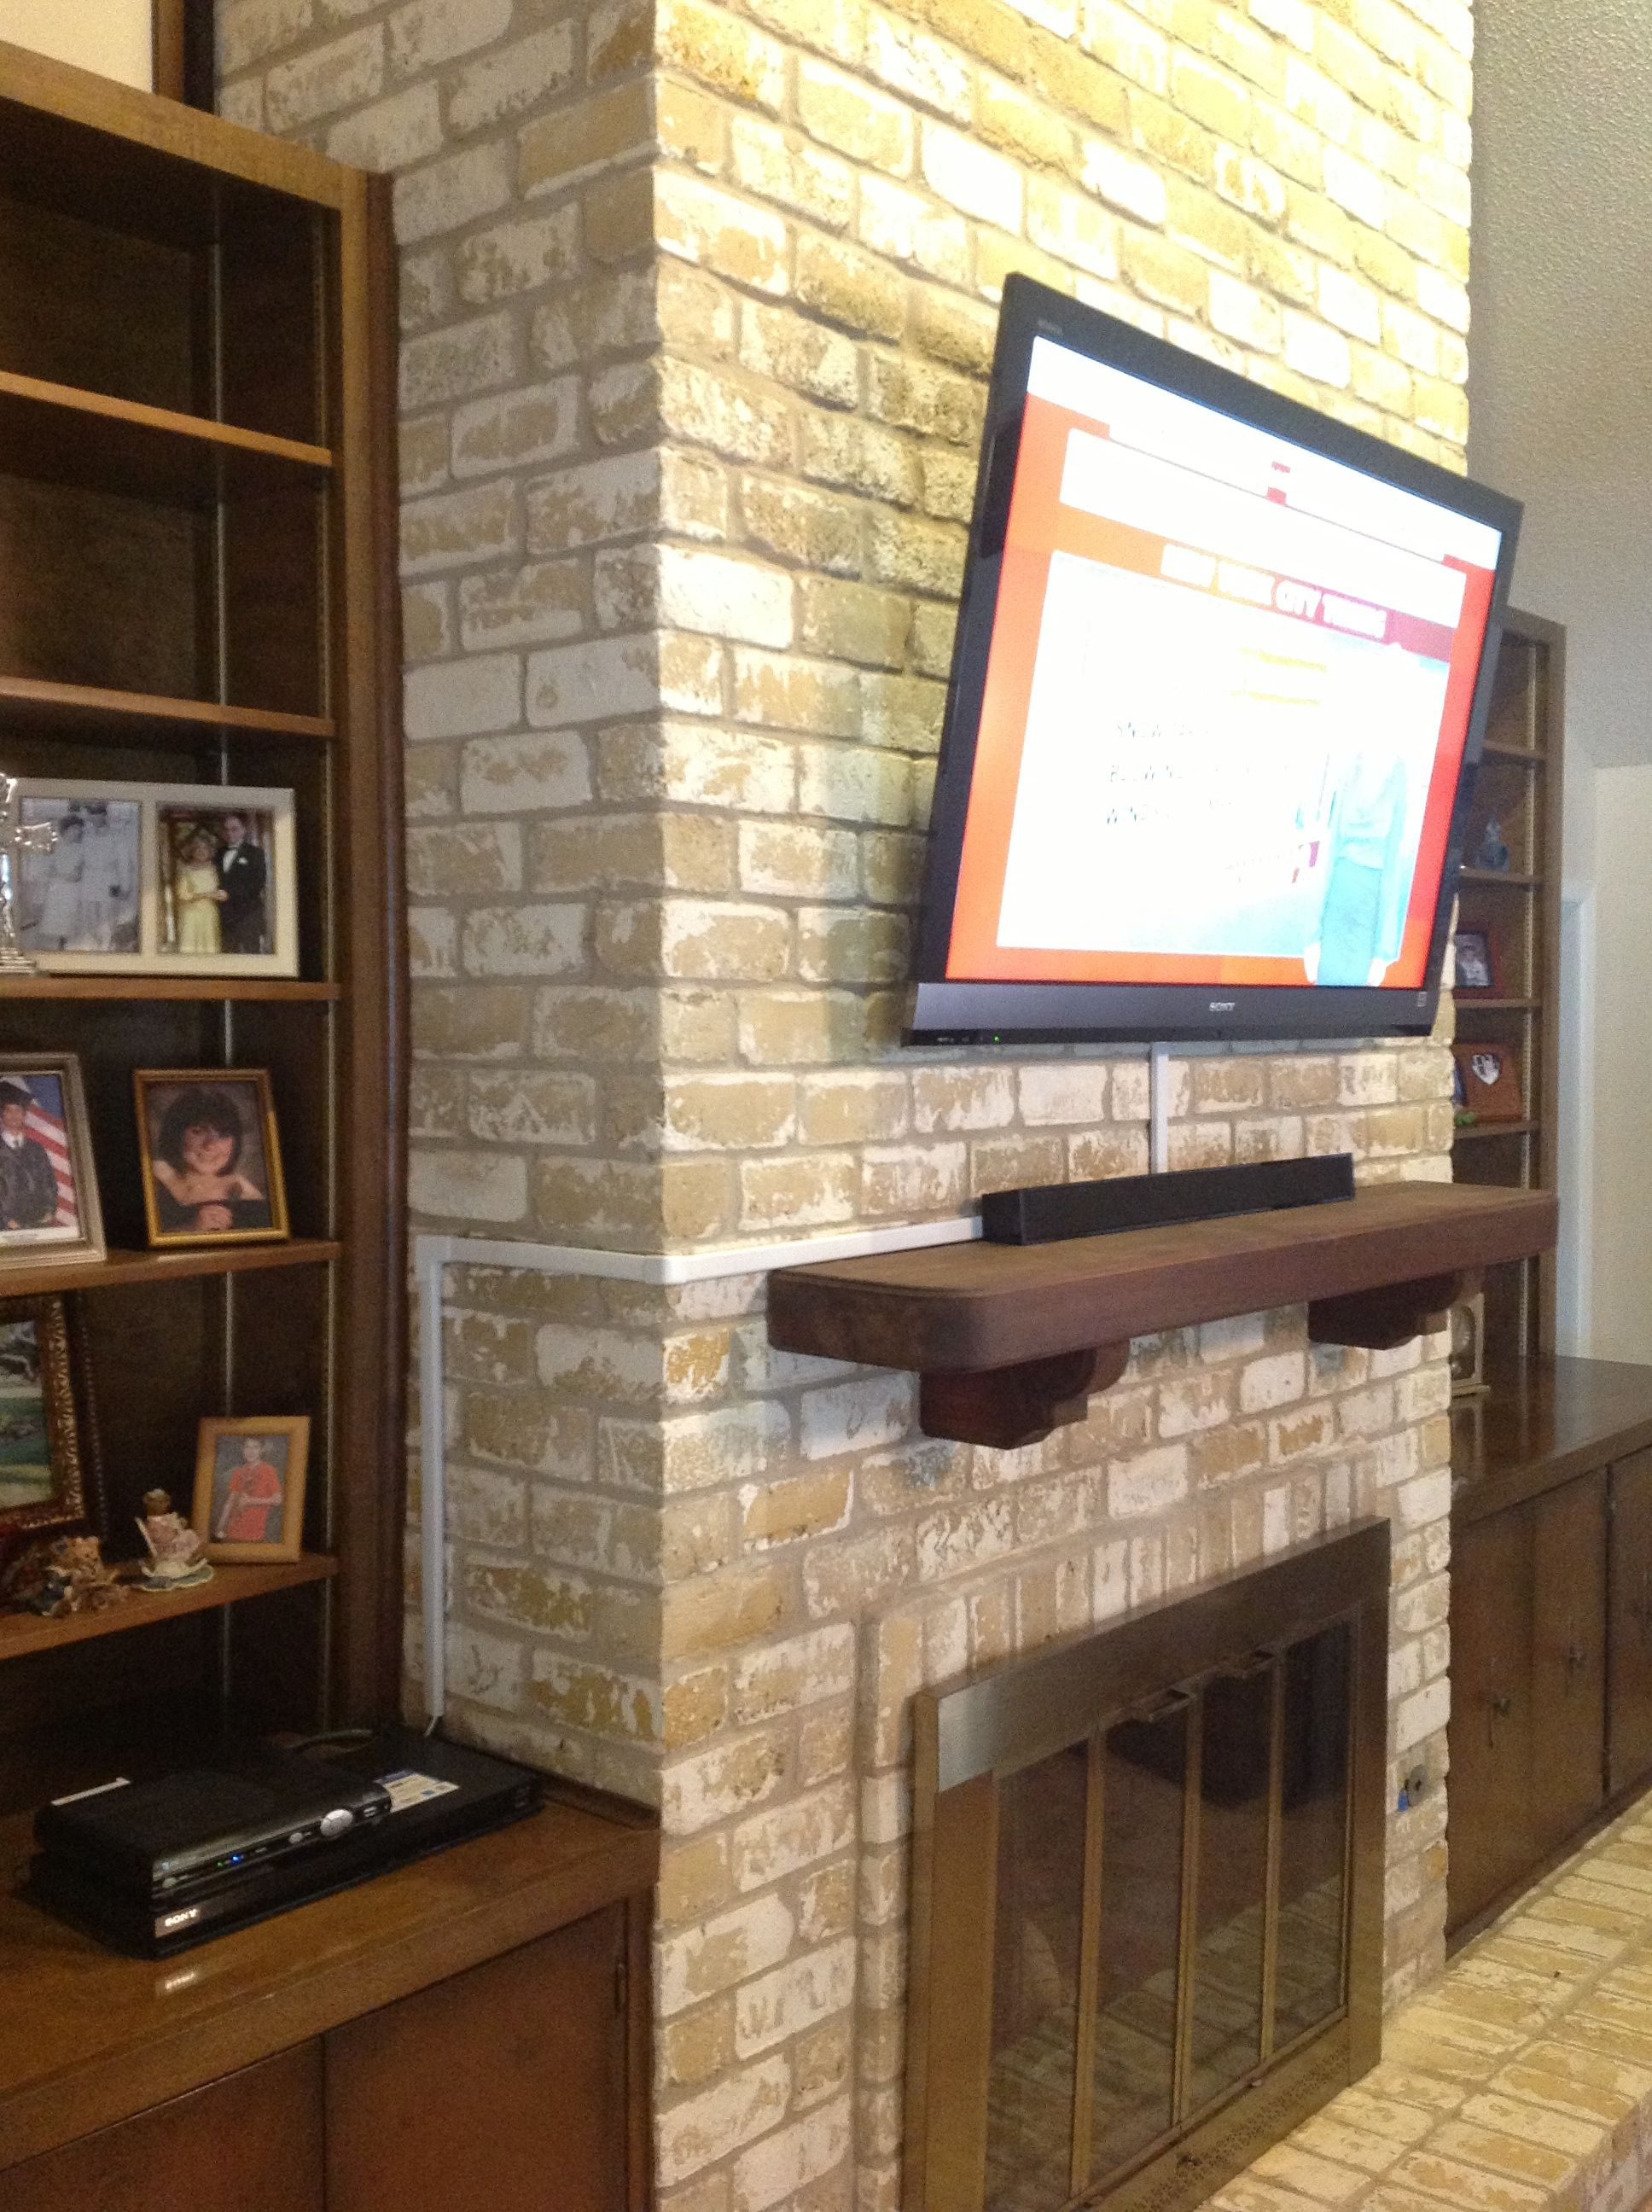 Groovy Tv Wall Mounting Over A Brick Fireplace By Ernesto Vesta Interior Design Ideas Ghosoteloinfo